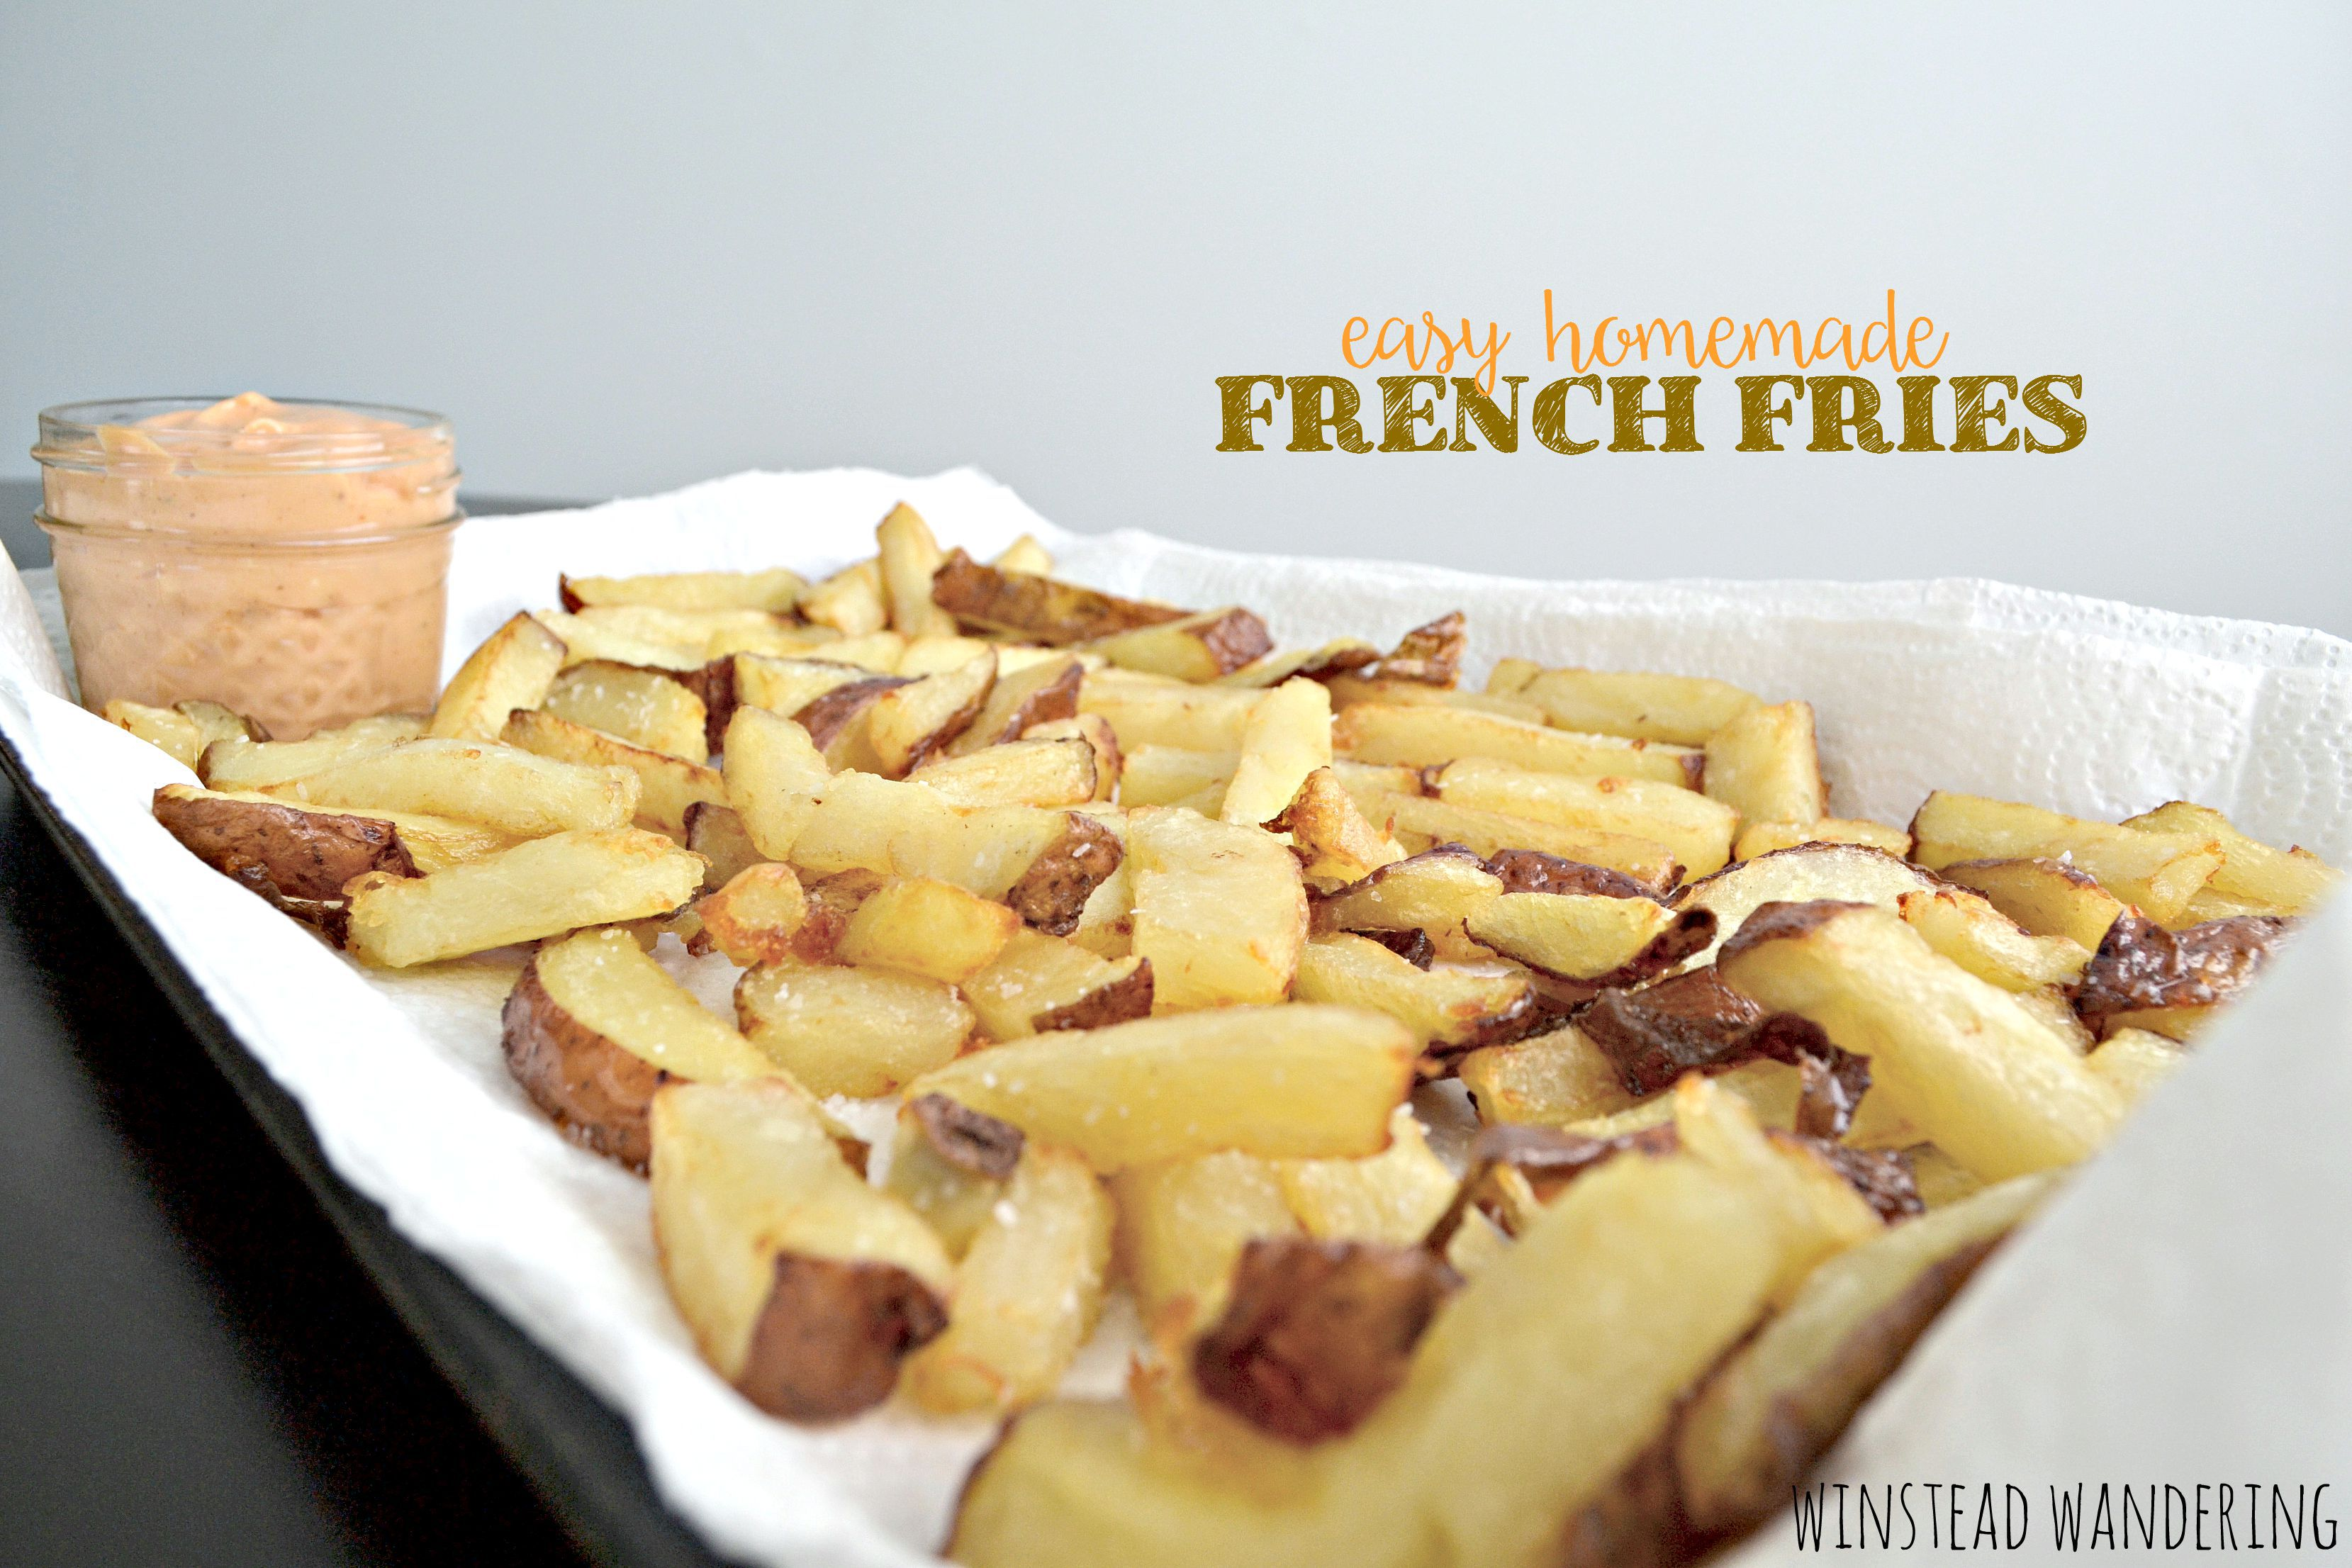 With this crazy method, easy homemade French fries are made by placing ...